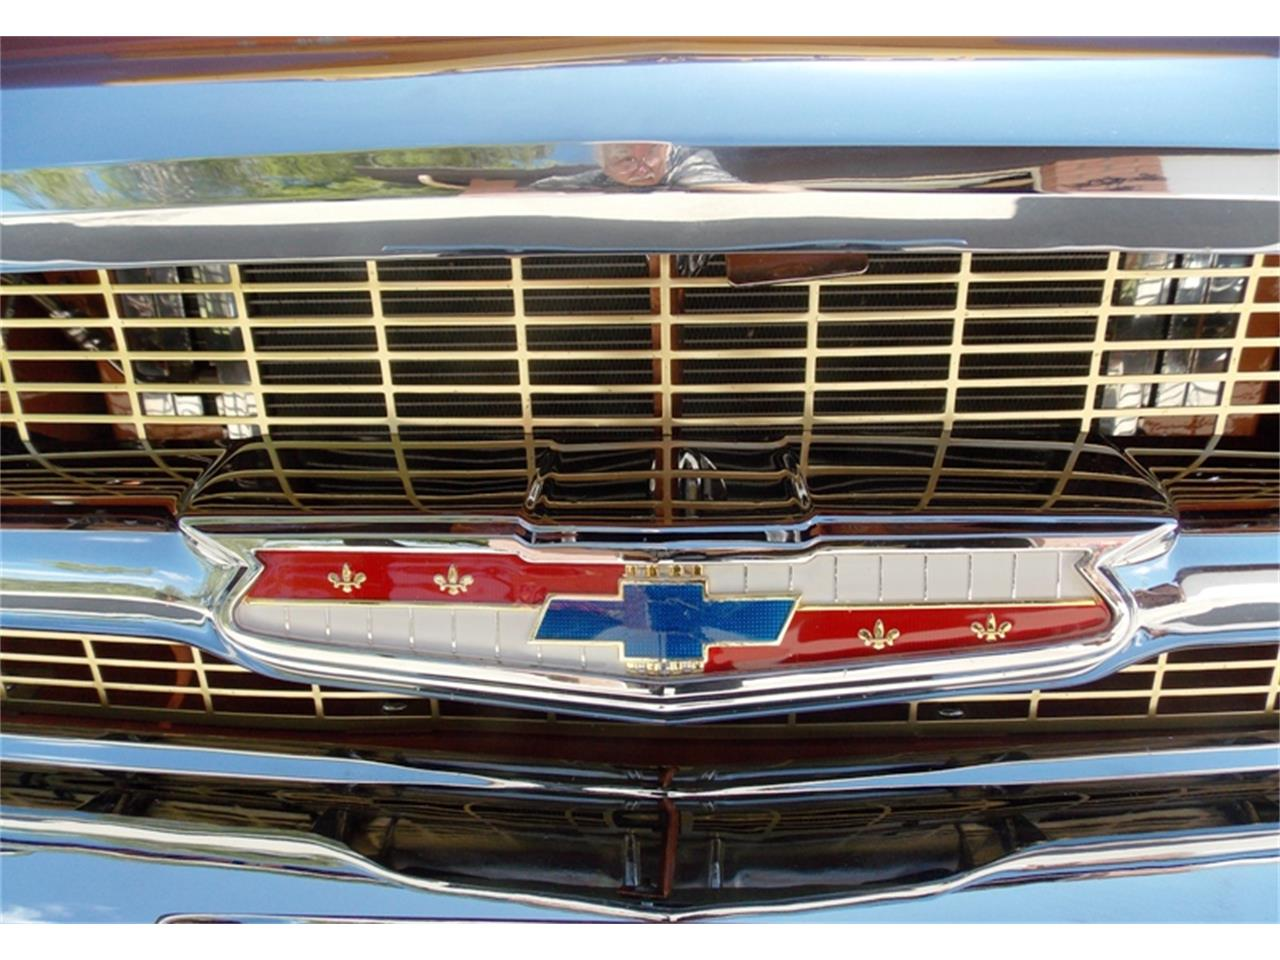 1957 Chevrolet Bel Air for sale in Tucson, AZ – photo 34